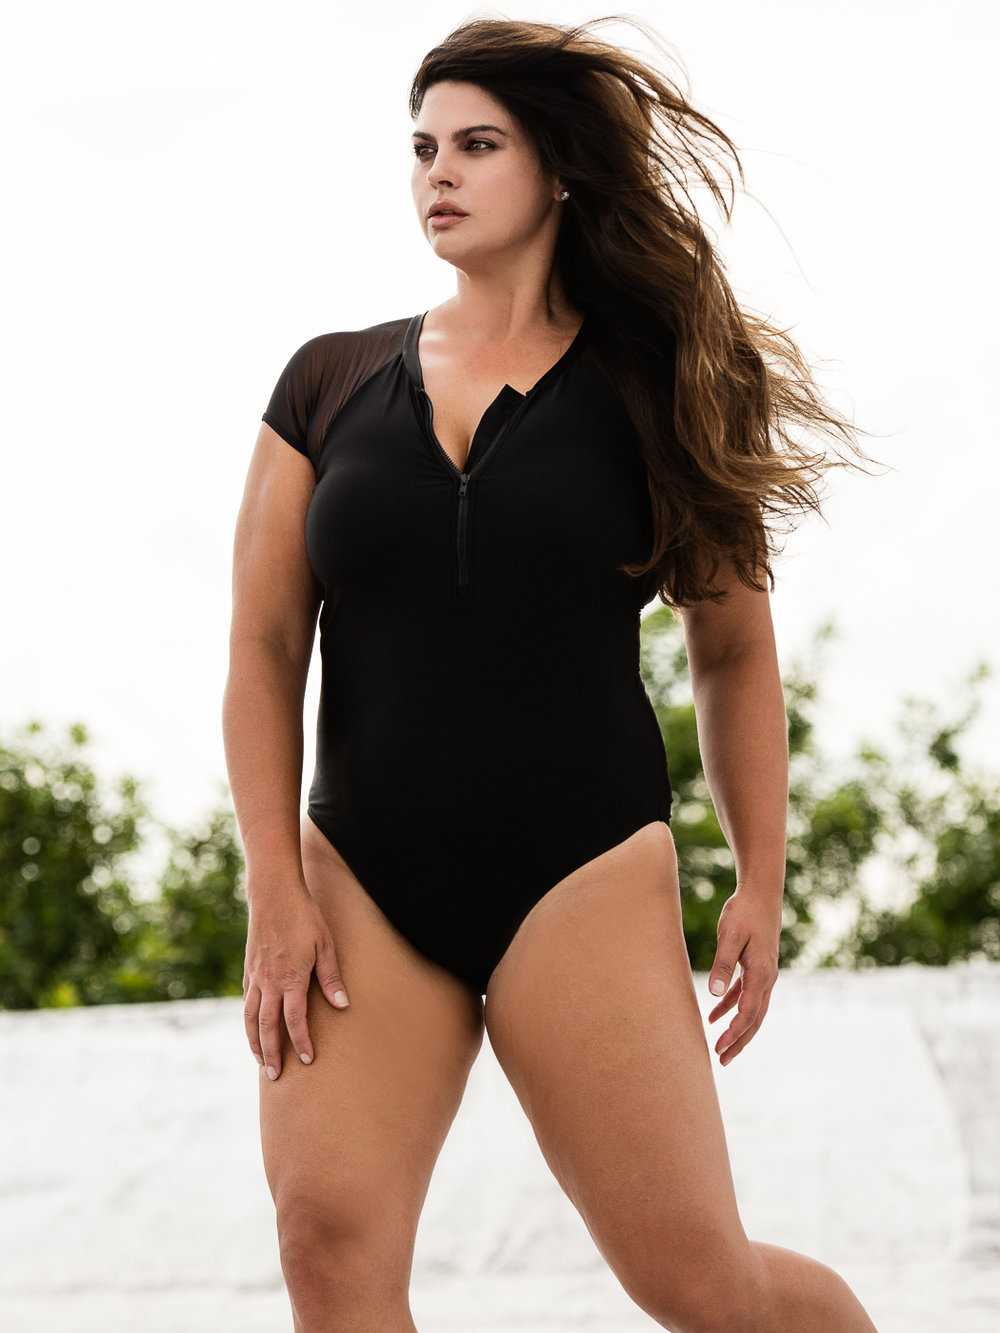 Swimsuit by Simply Be. Photo by Nick Suarez. HMU by Georgia Mitropoulos.